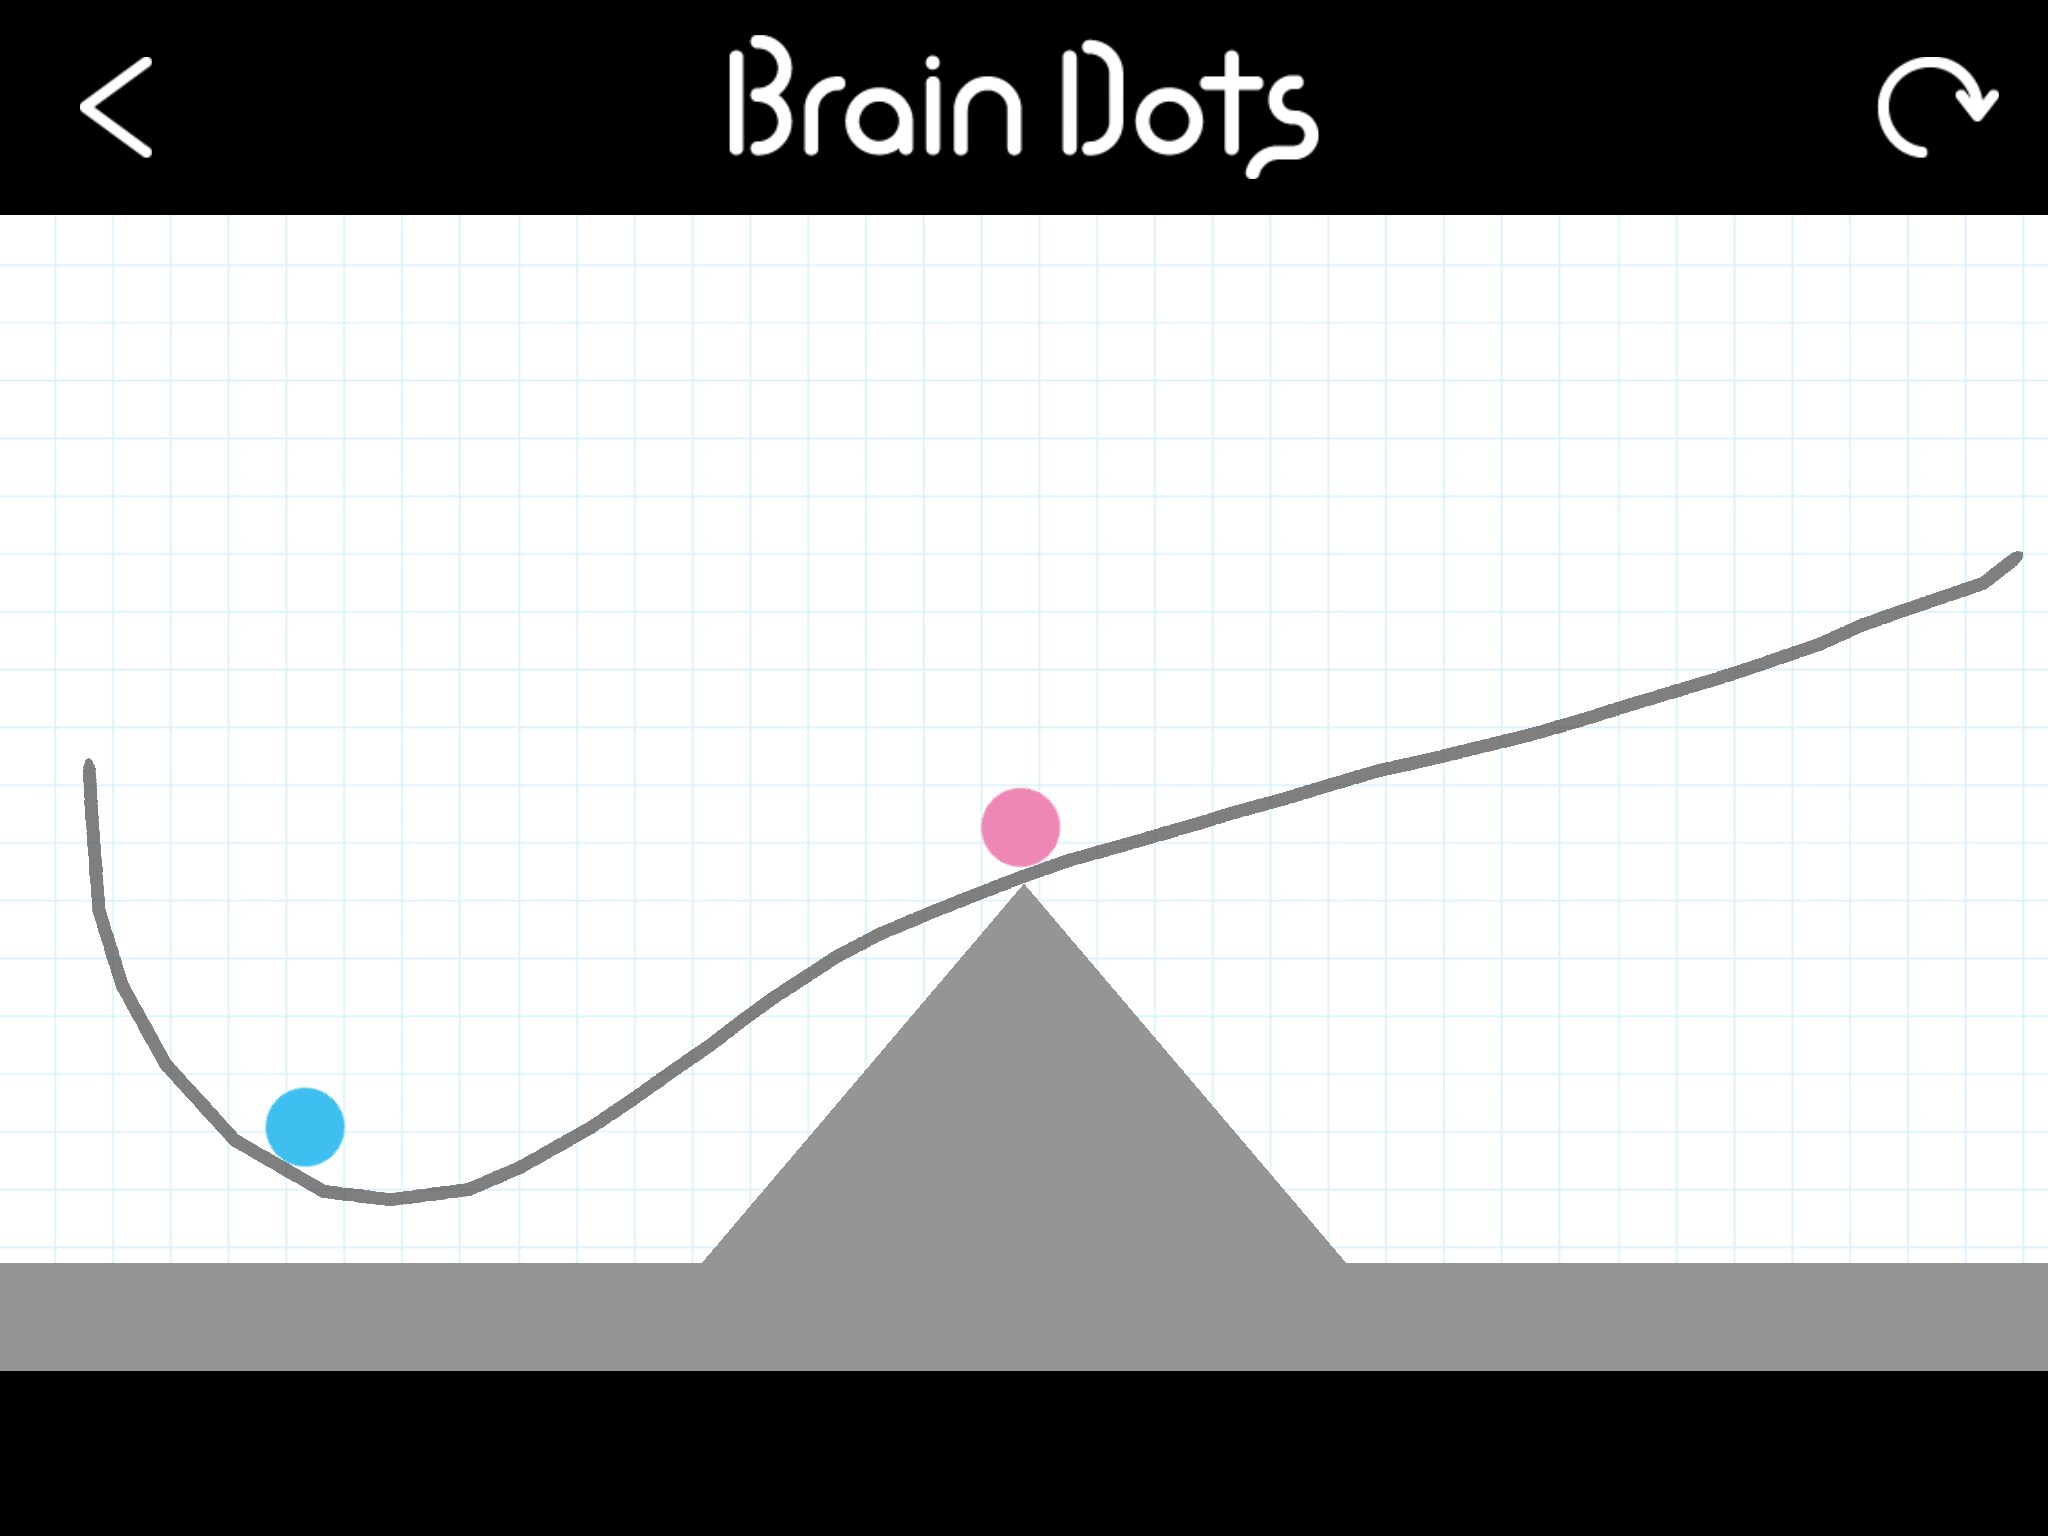 Train Brain for Android - APK Download - apkpure.com